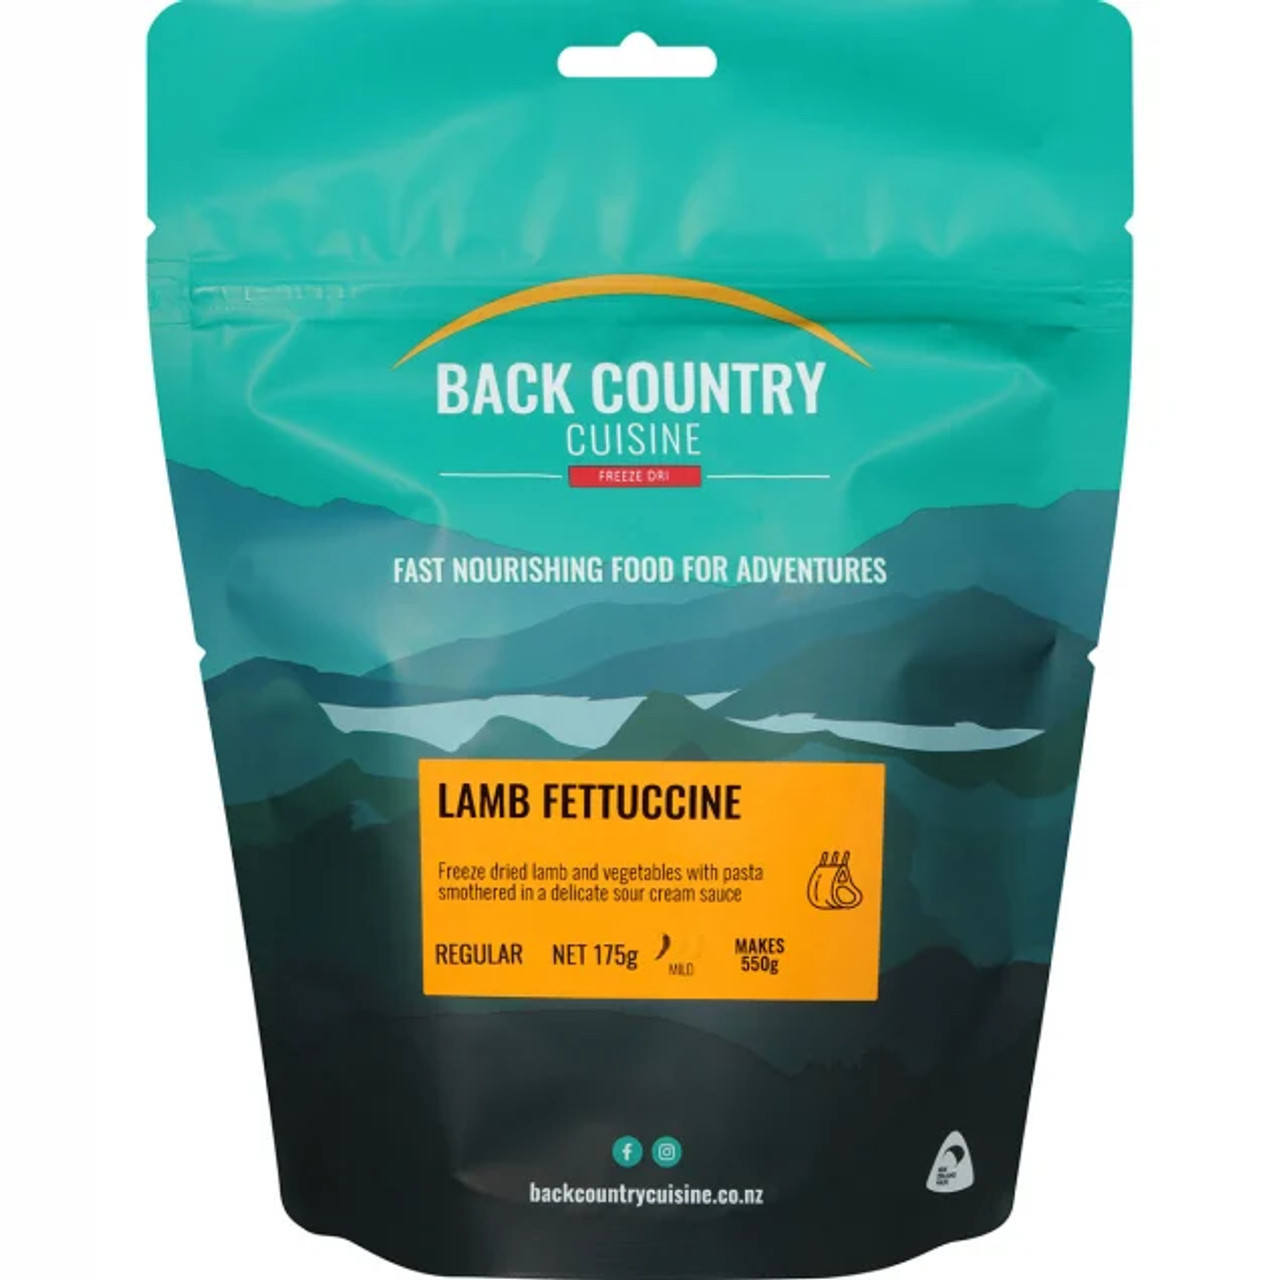 Back Country Cuisine: Lamb Fettuccine Online at Mountain Mail Order South Africa